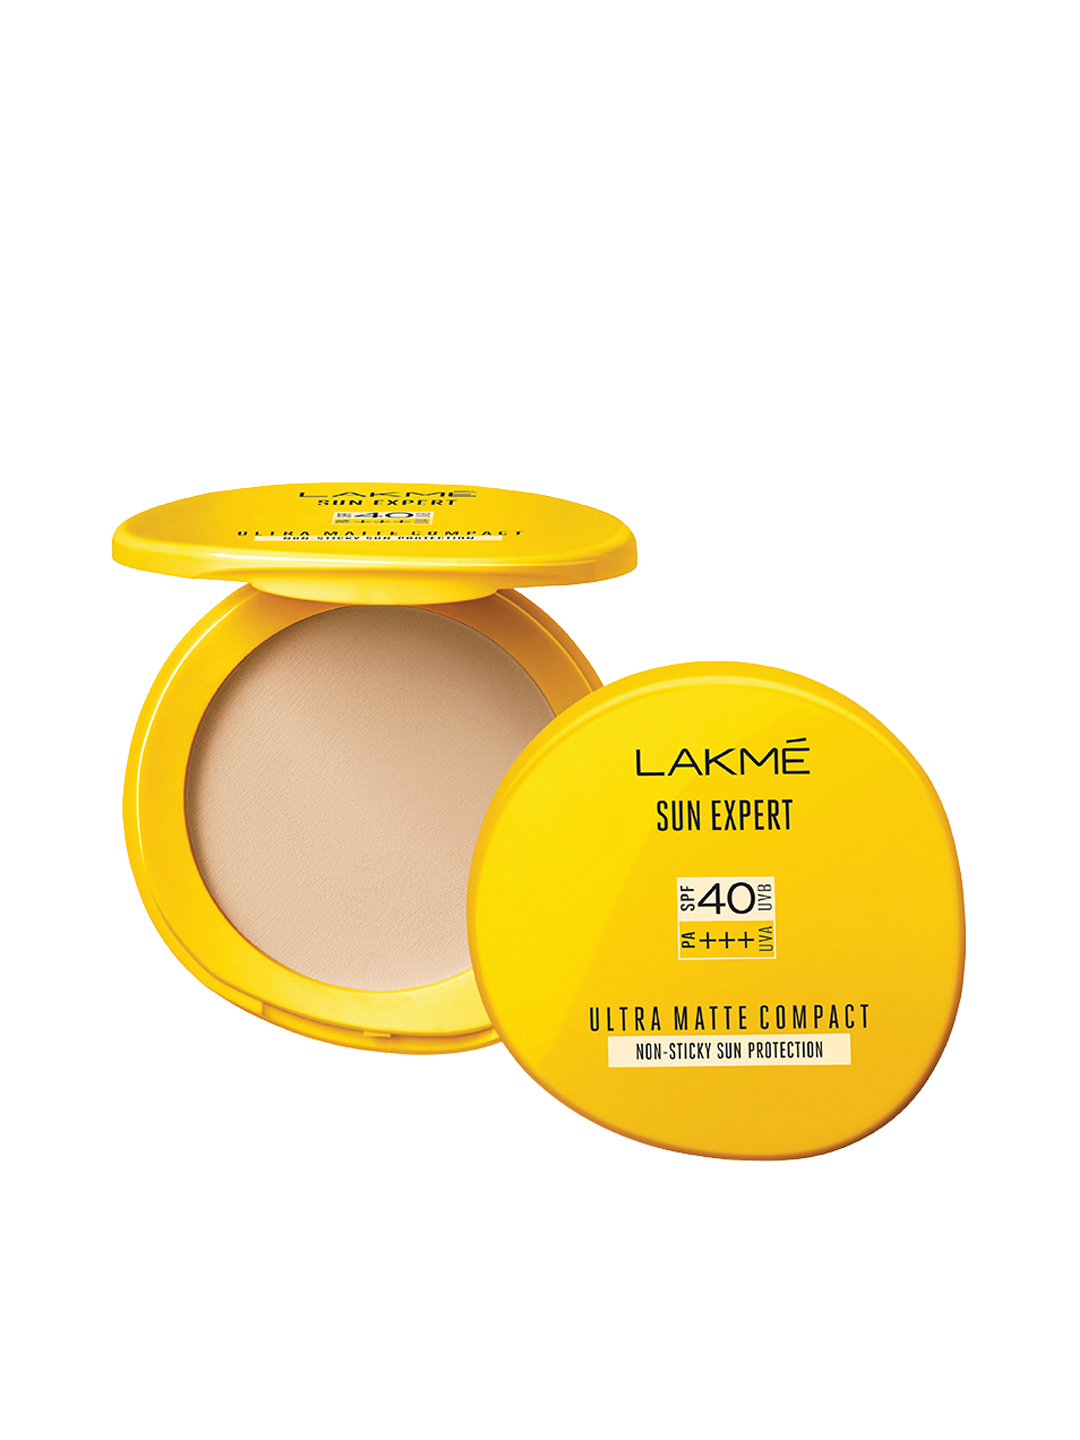 Lakme Sun Expert Ultra Matte SPF 40 PA+++ Compact Price in India